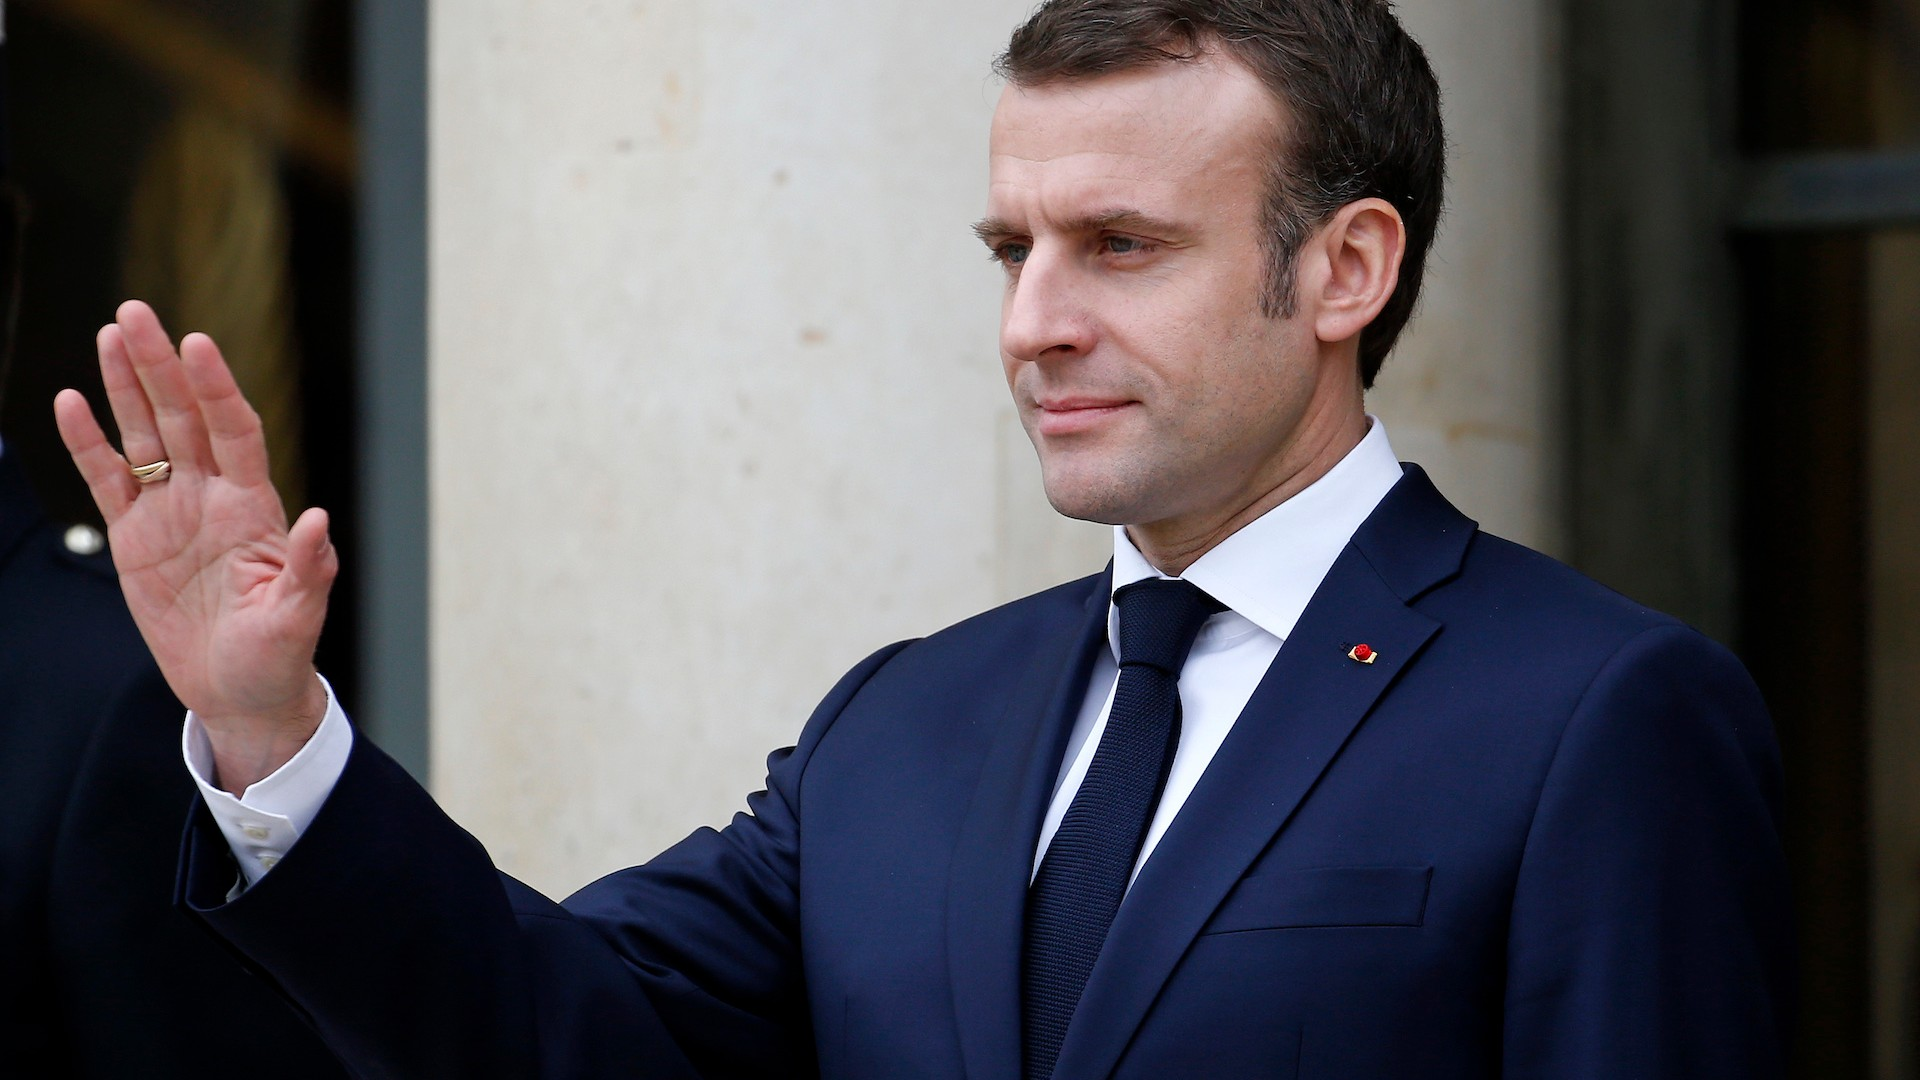 Emmanuel Macron wants to criminalize anti-Zionism as hate speech